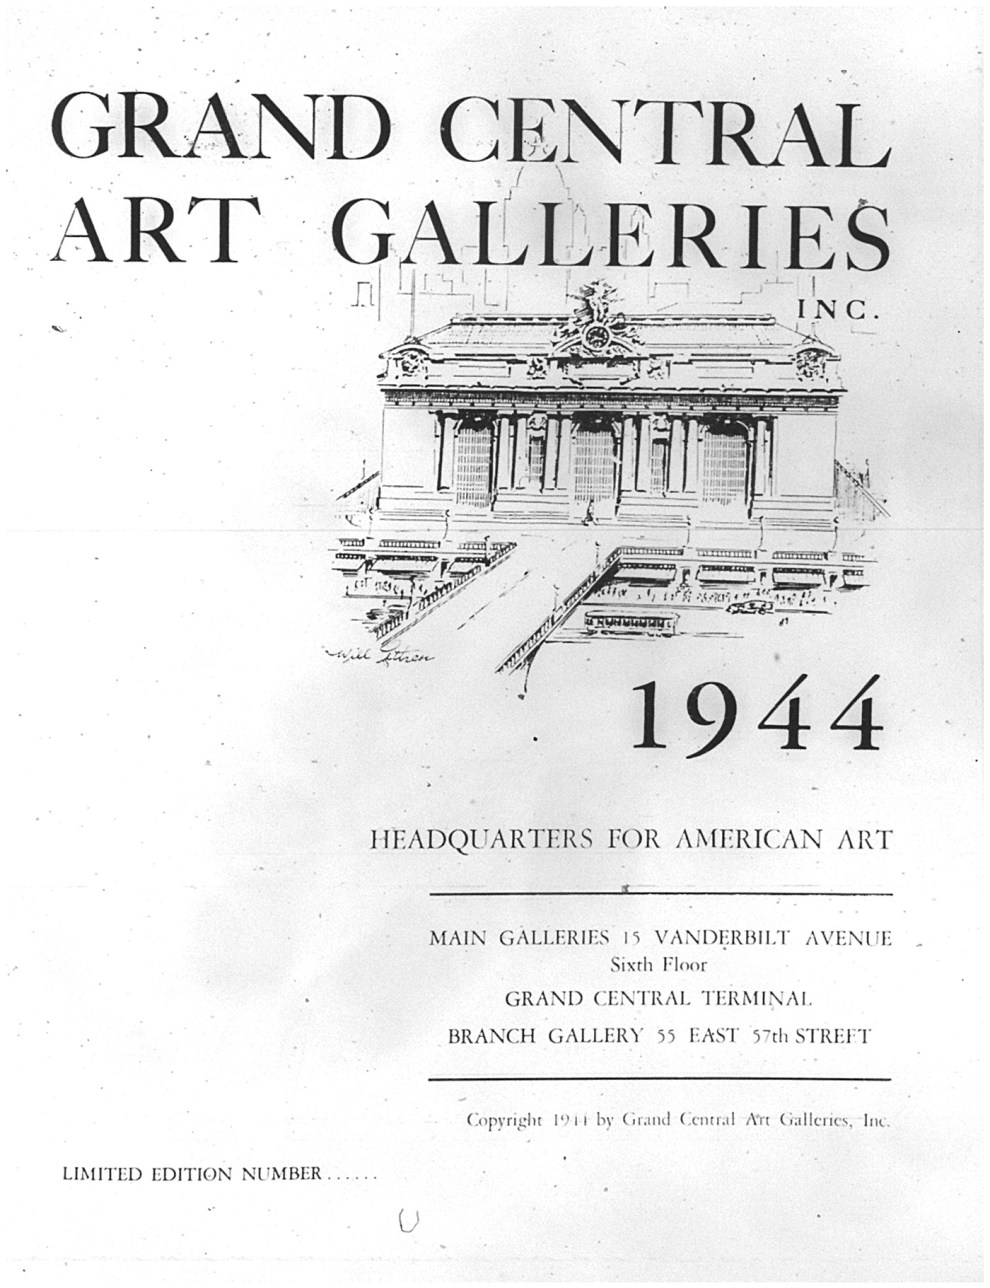 """Grand Central Art Galleries, Inc. 1944"" by Grand Central Art Galleries, Inc., New York, NY, 1944, illustrated: b&w on page 47"